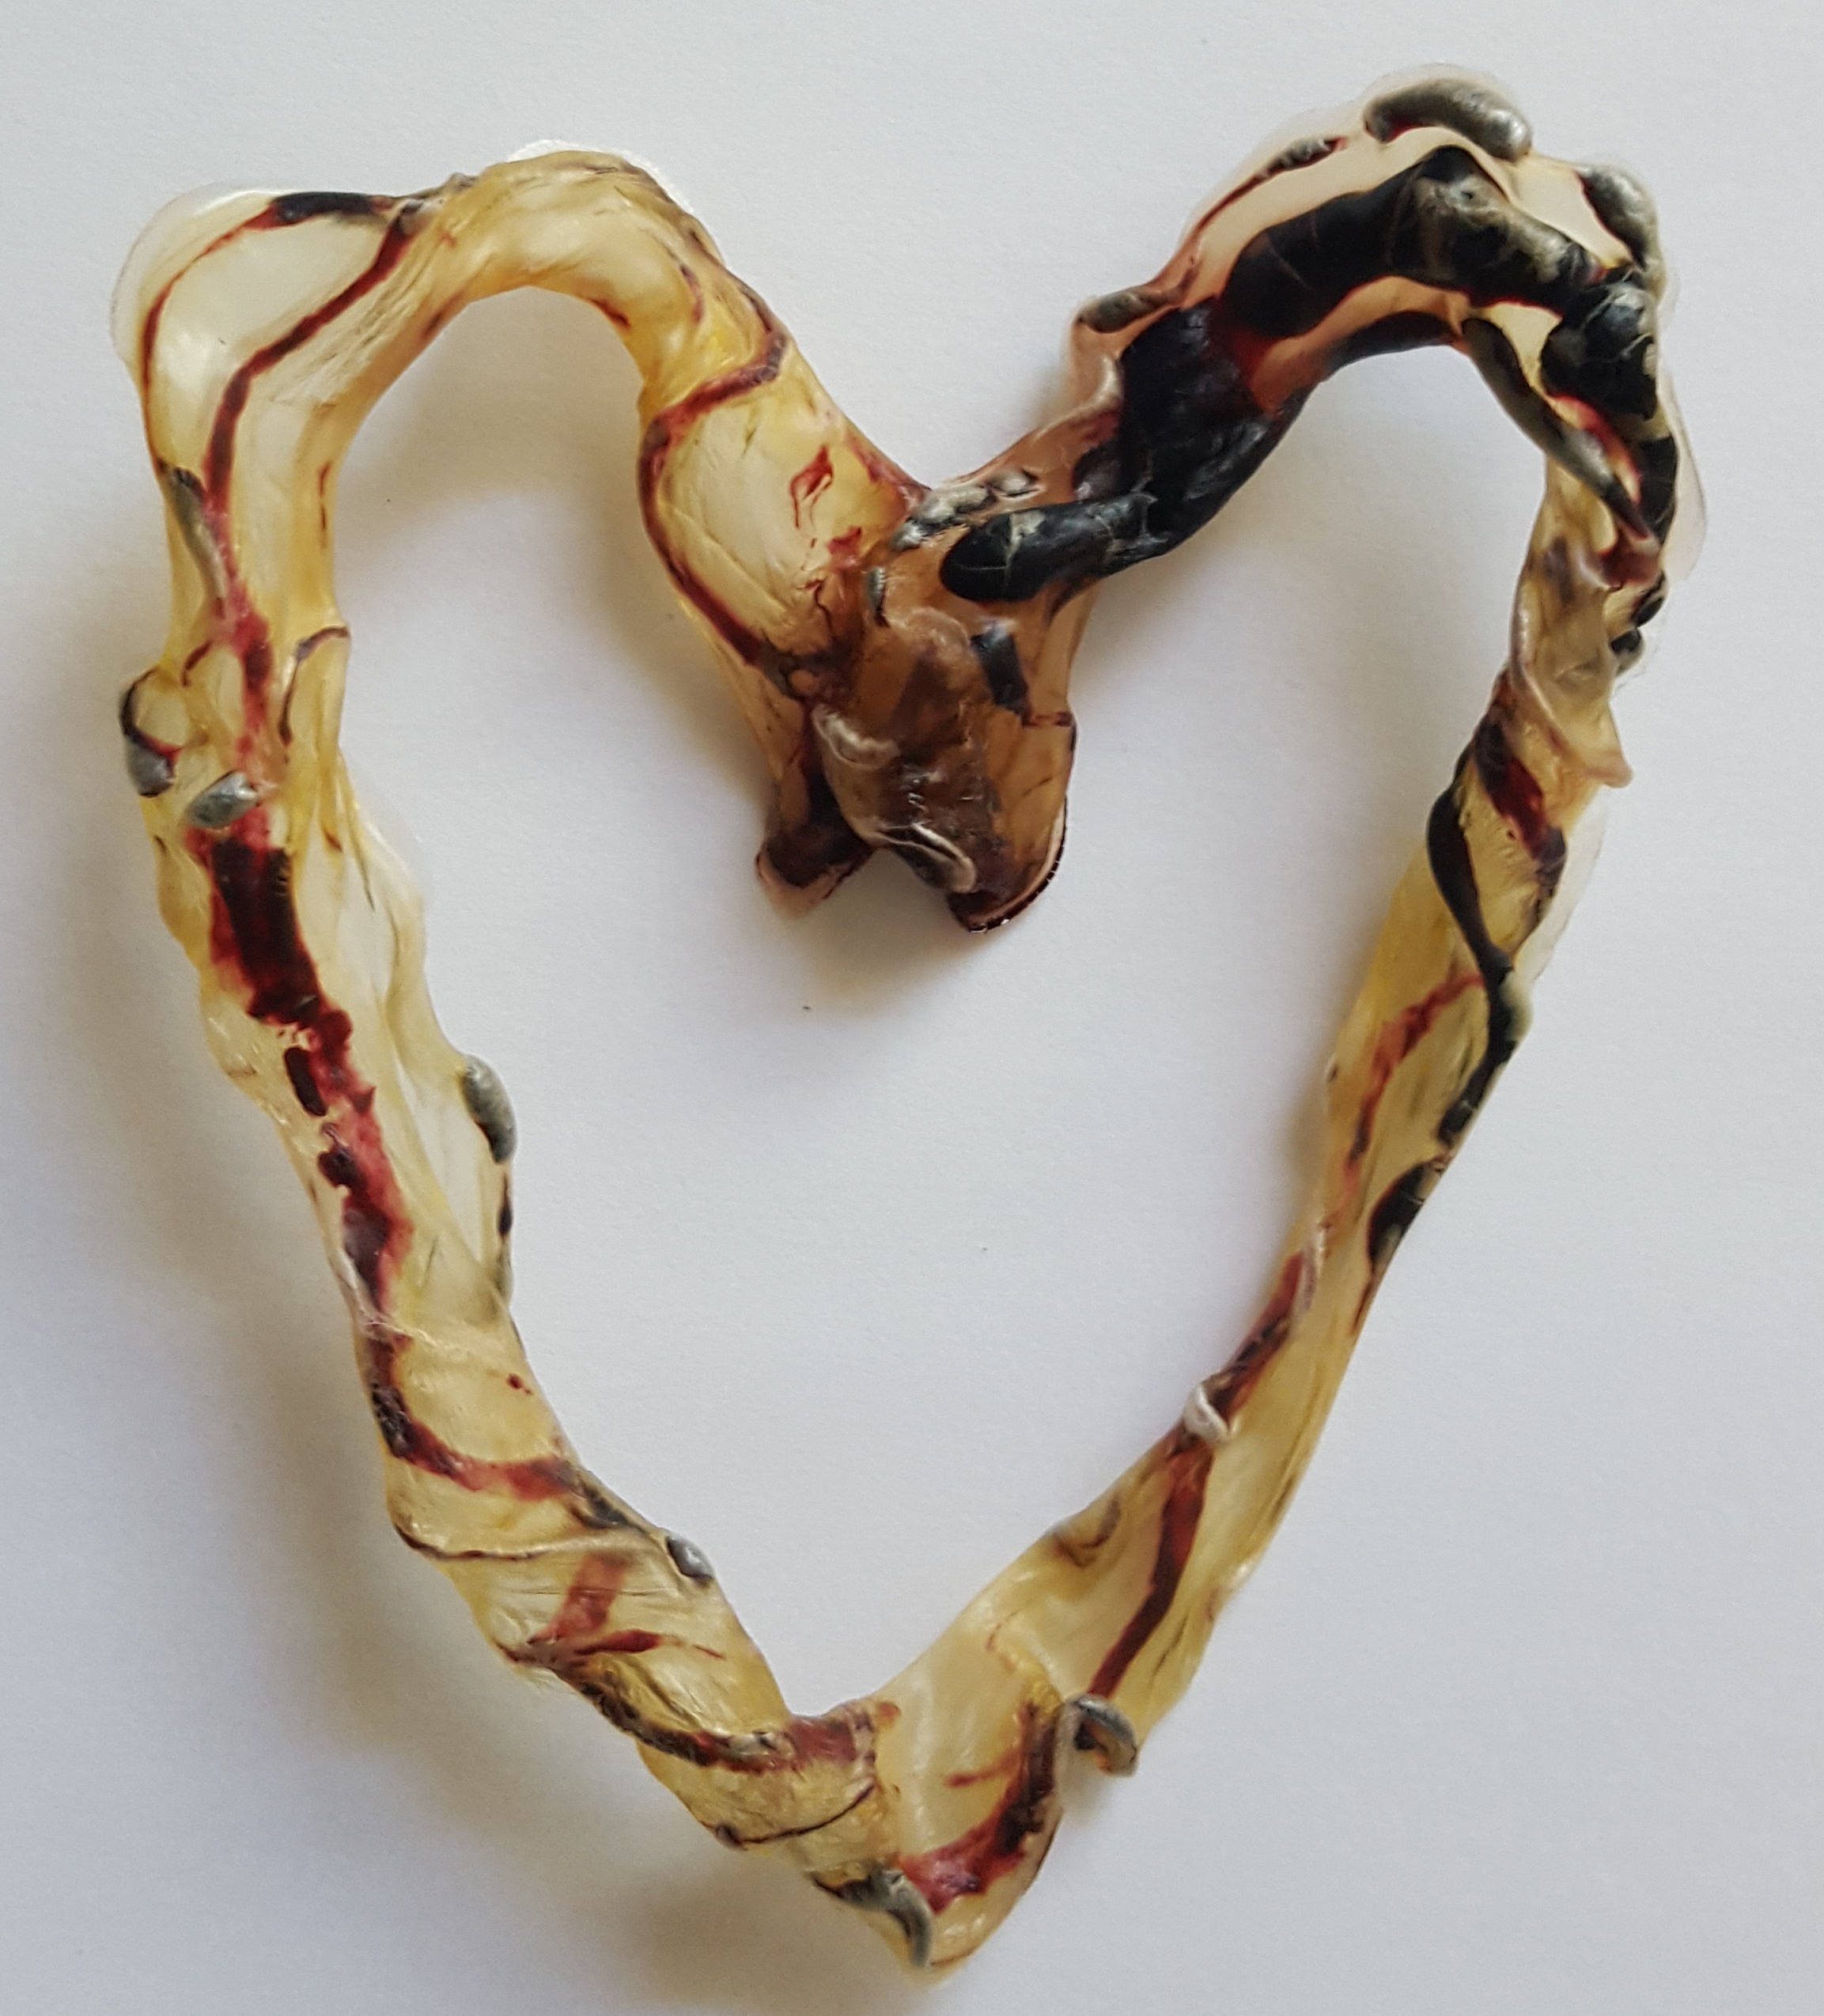 Umbilical Cord Keepsake Heart